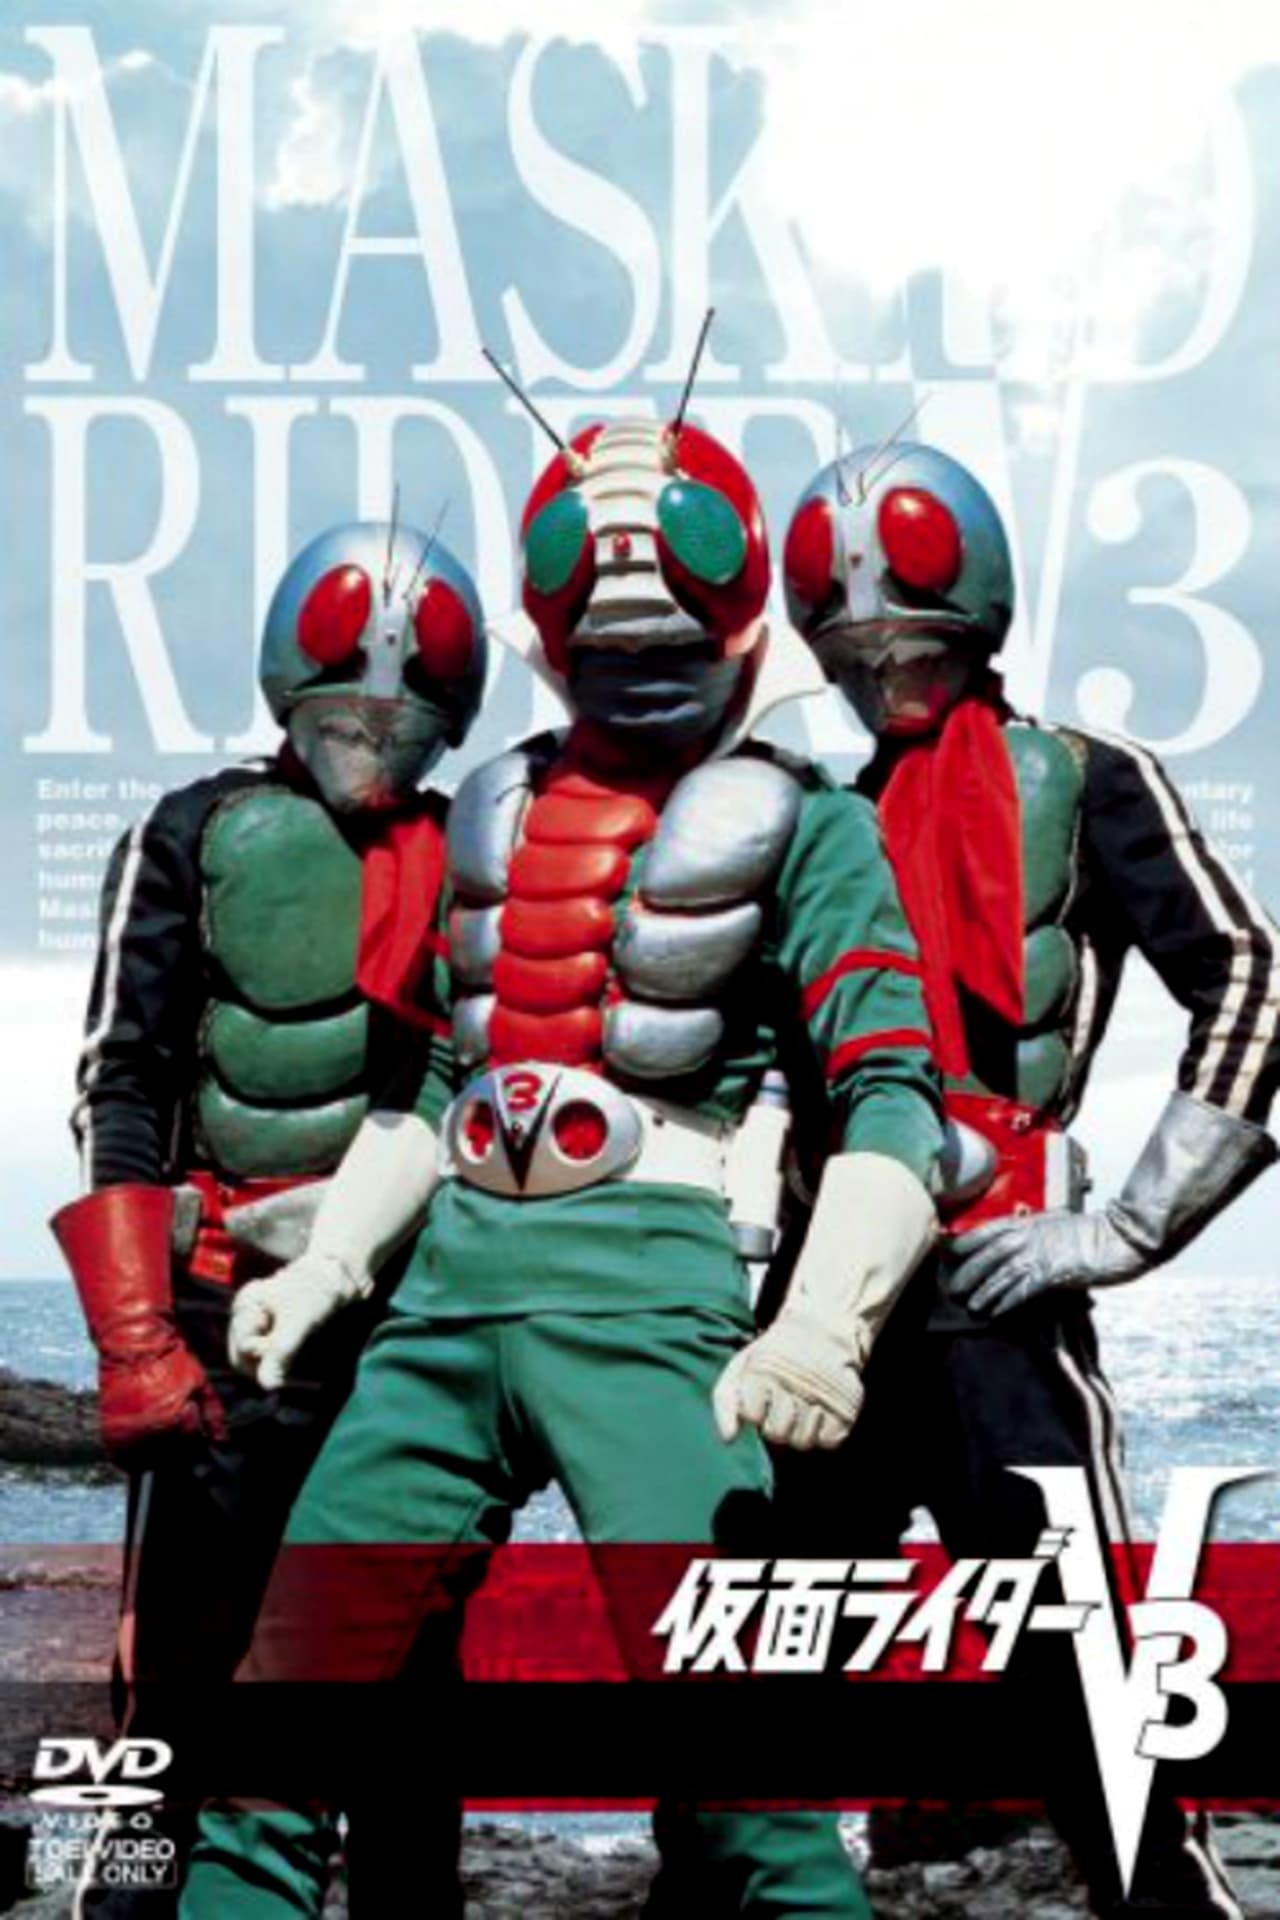 Watch Kamen Rider Season 2 Online